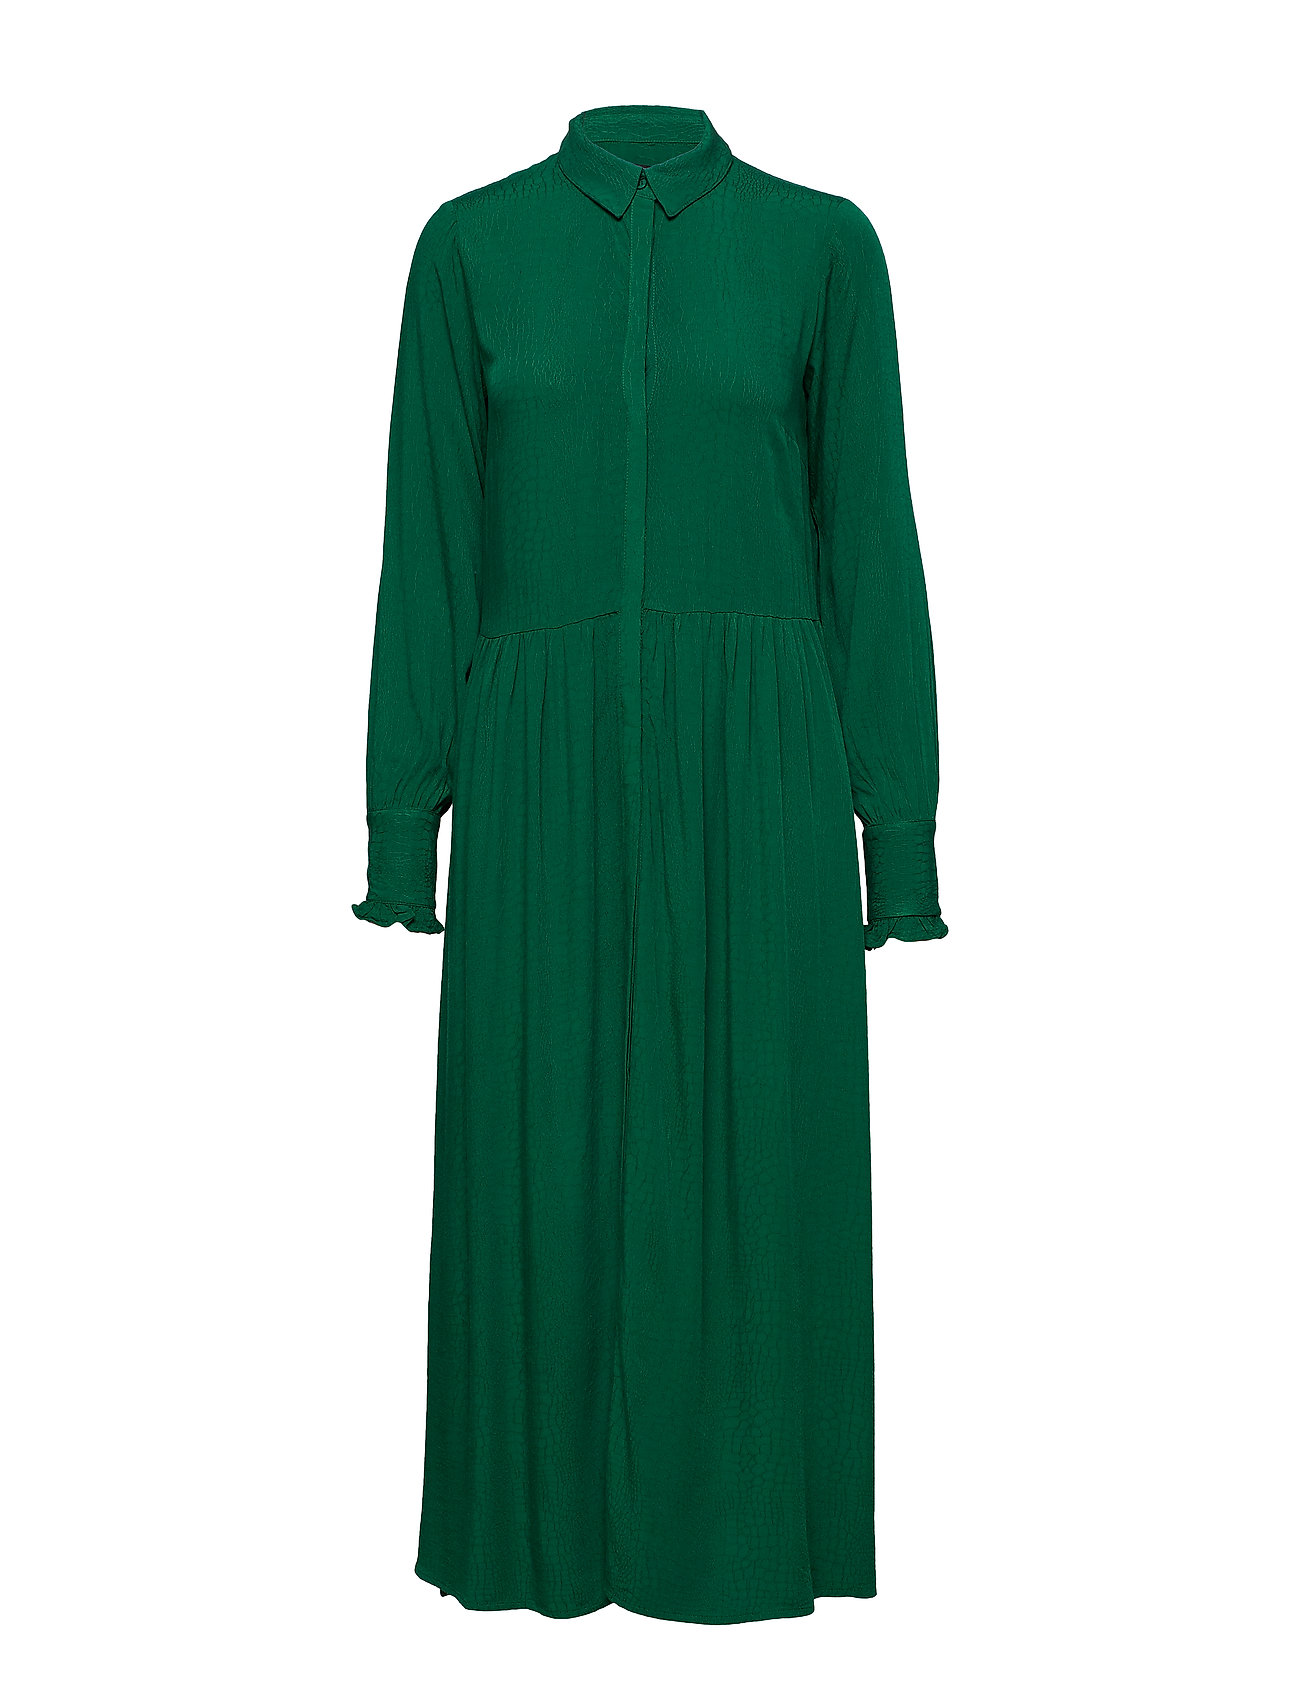 Soft Rebels Thilde Shirt Dress - EVERGREEN